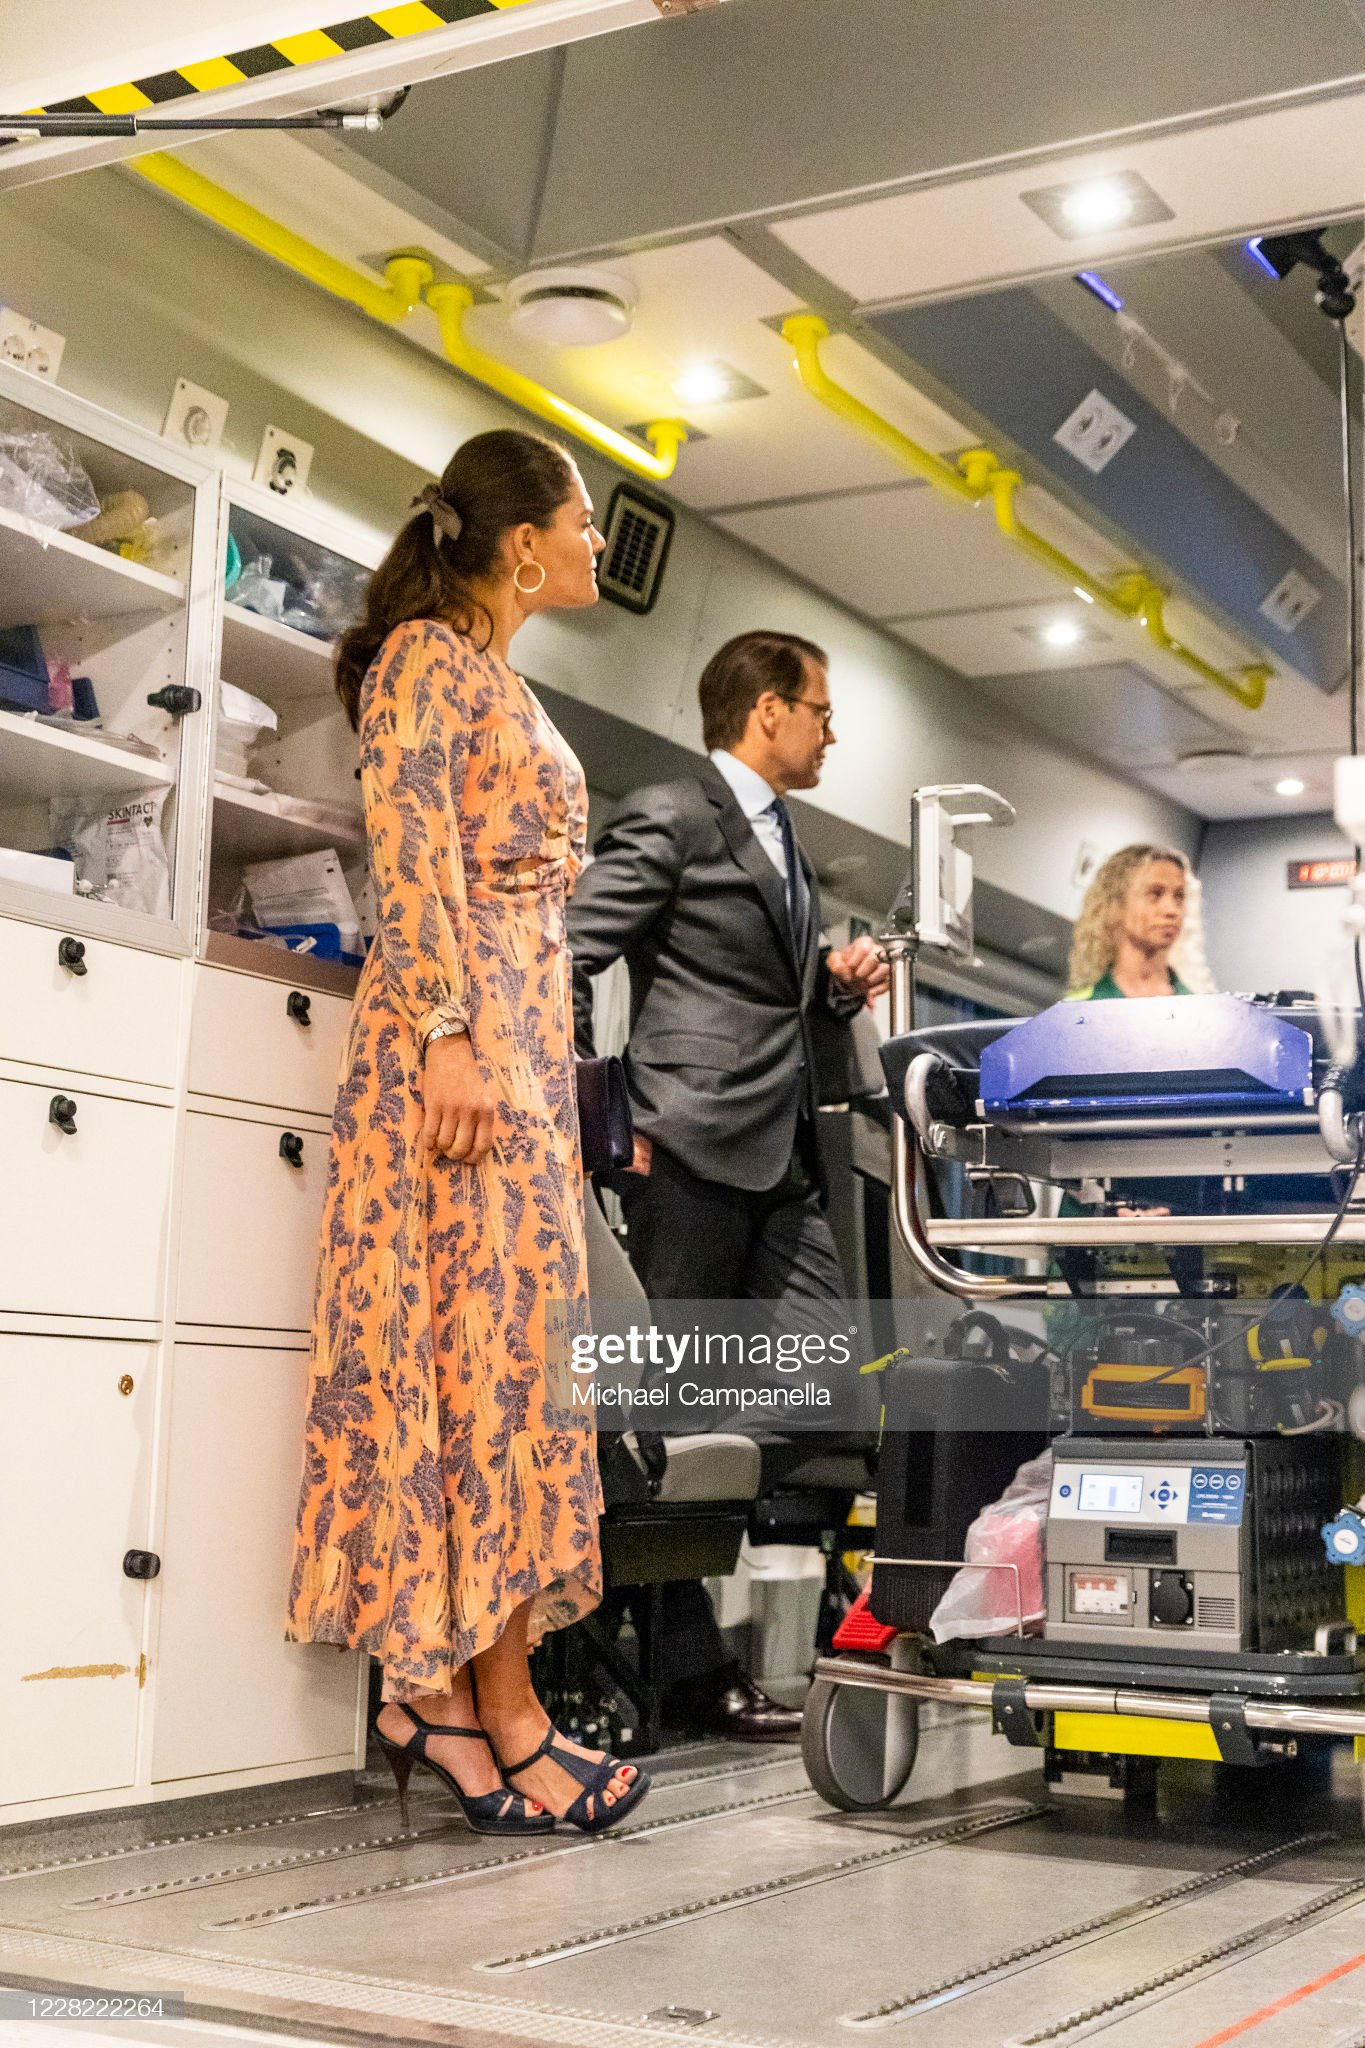 crown-princess-victoria-and-prince-daniel-of-sweden-visit-an-station-picture-id1228222264